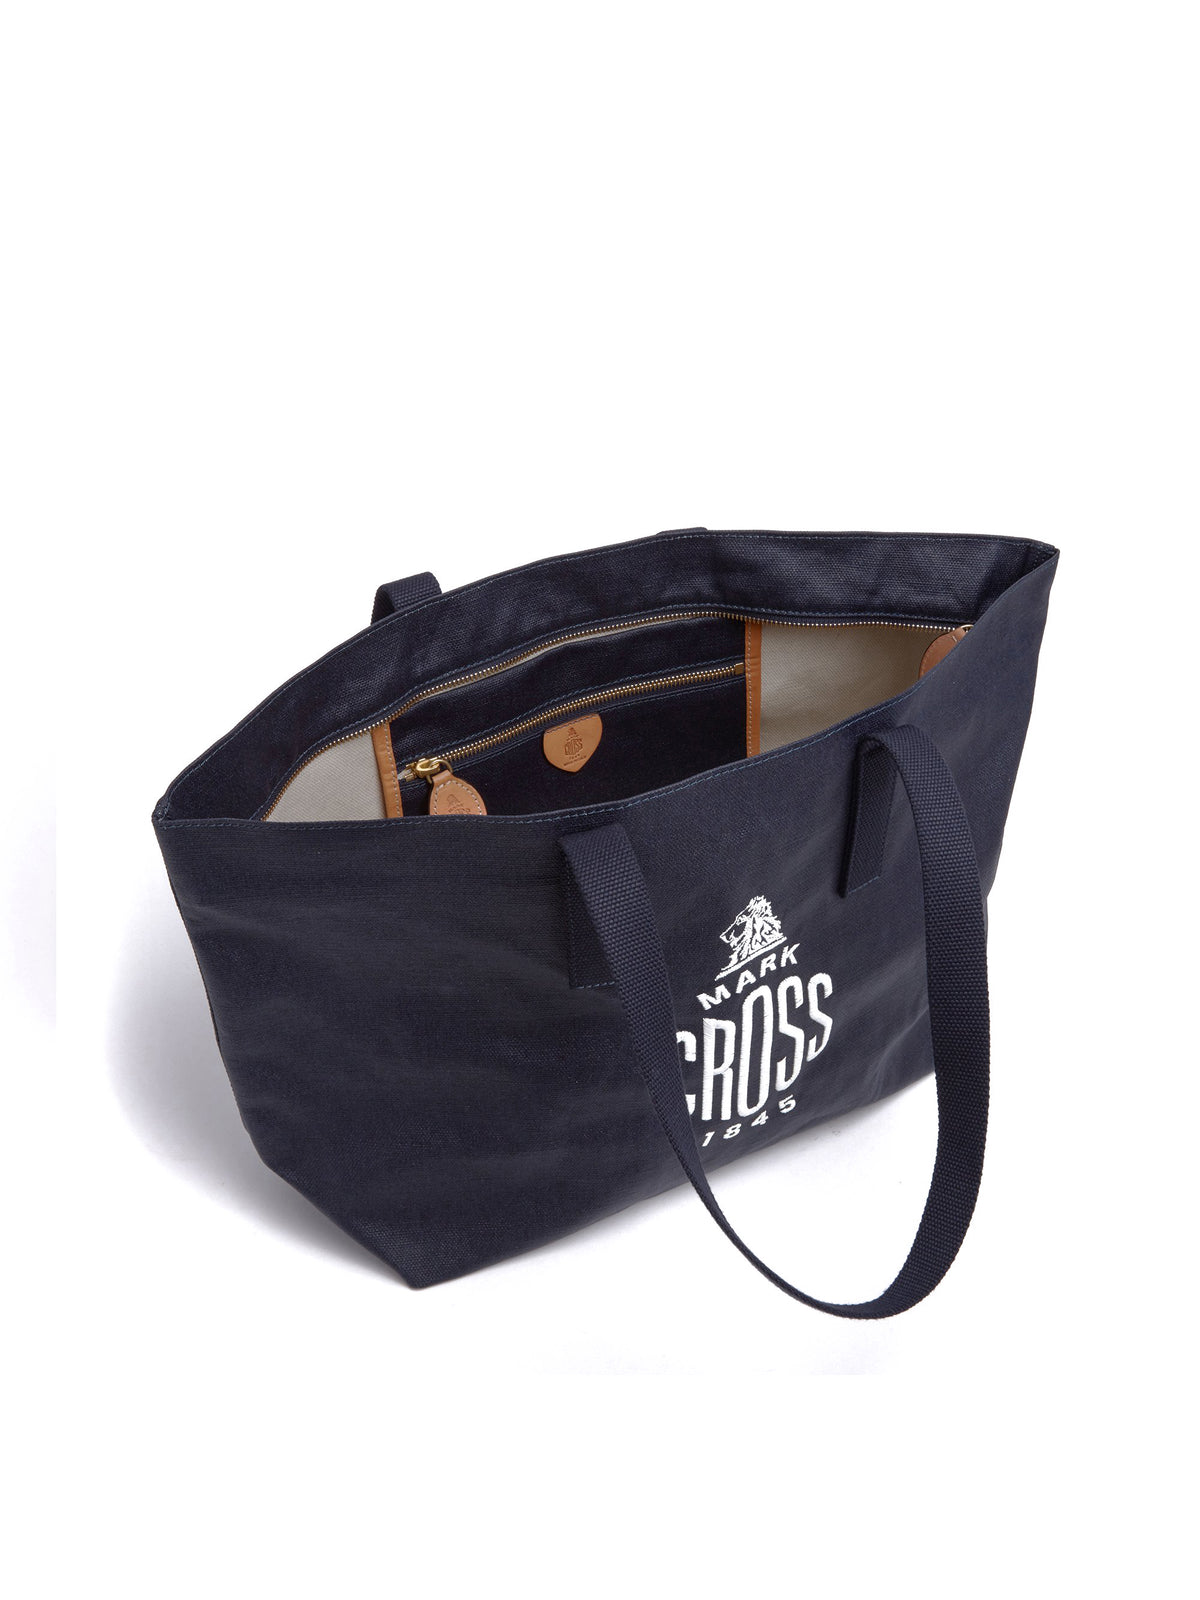 Mark Cross Weatherbird Canvas Small Tote Bag Canvas Navy Interior